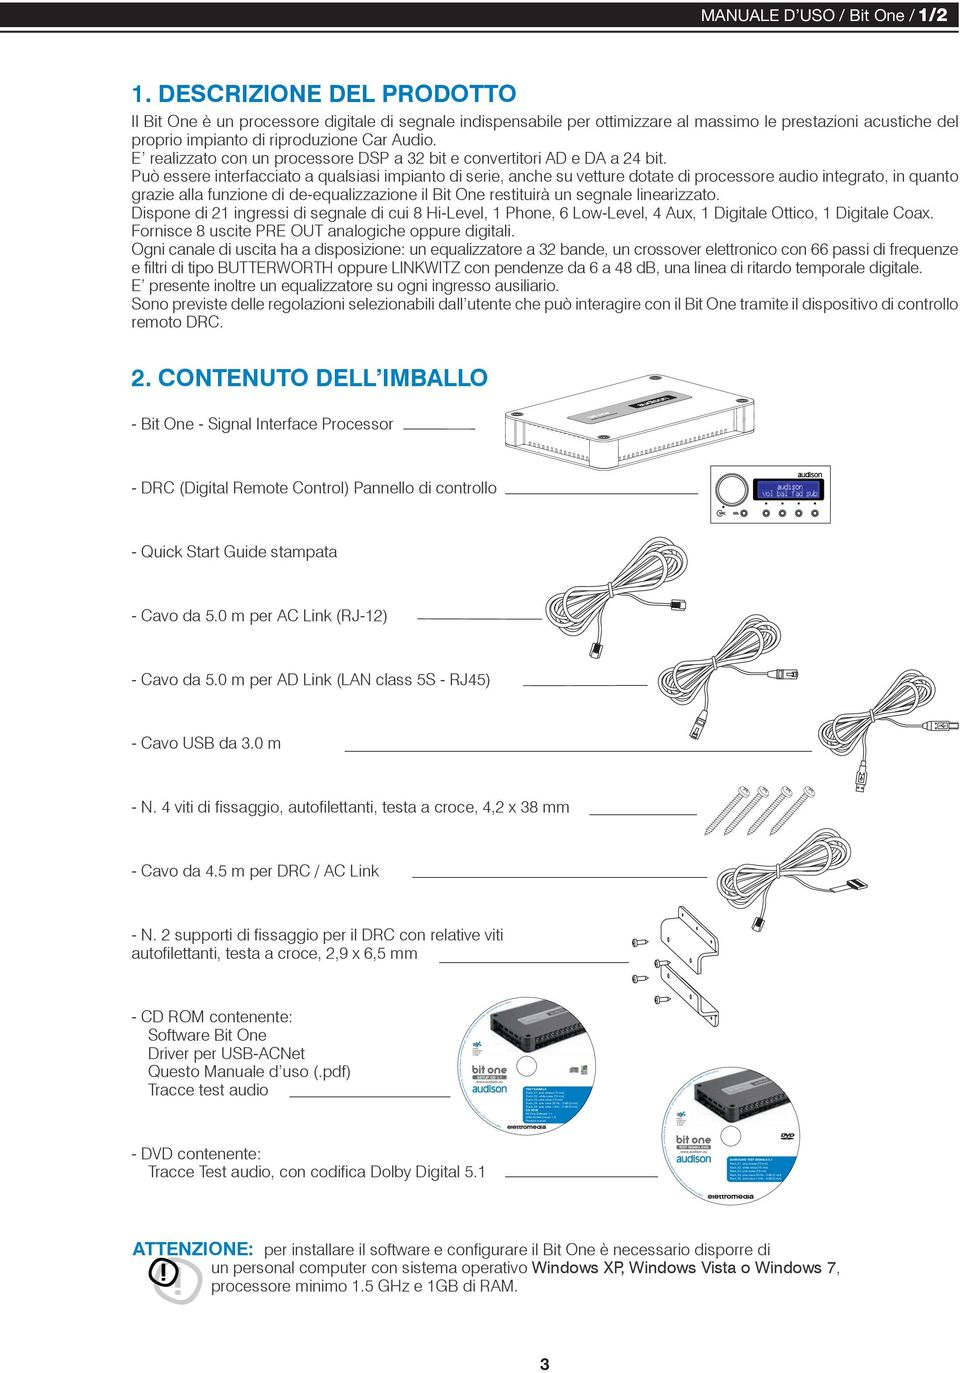 1 USB-ACNet Drivers 1.0 Product manual audison is part of elettromedia - 62018 Potenza Picena (MC) Italy - www.elettromedia.it - All Rights Reserved - All product names are registered trademarks of their respective holders SURROUND TEST SIGNALS 5.